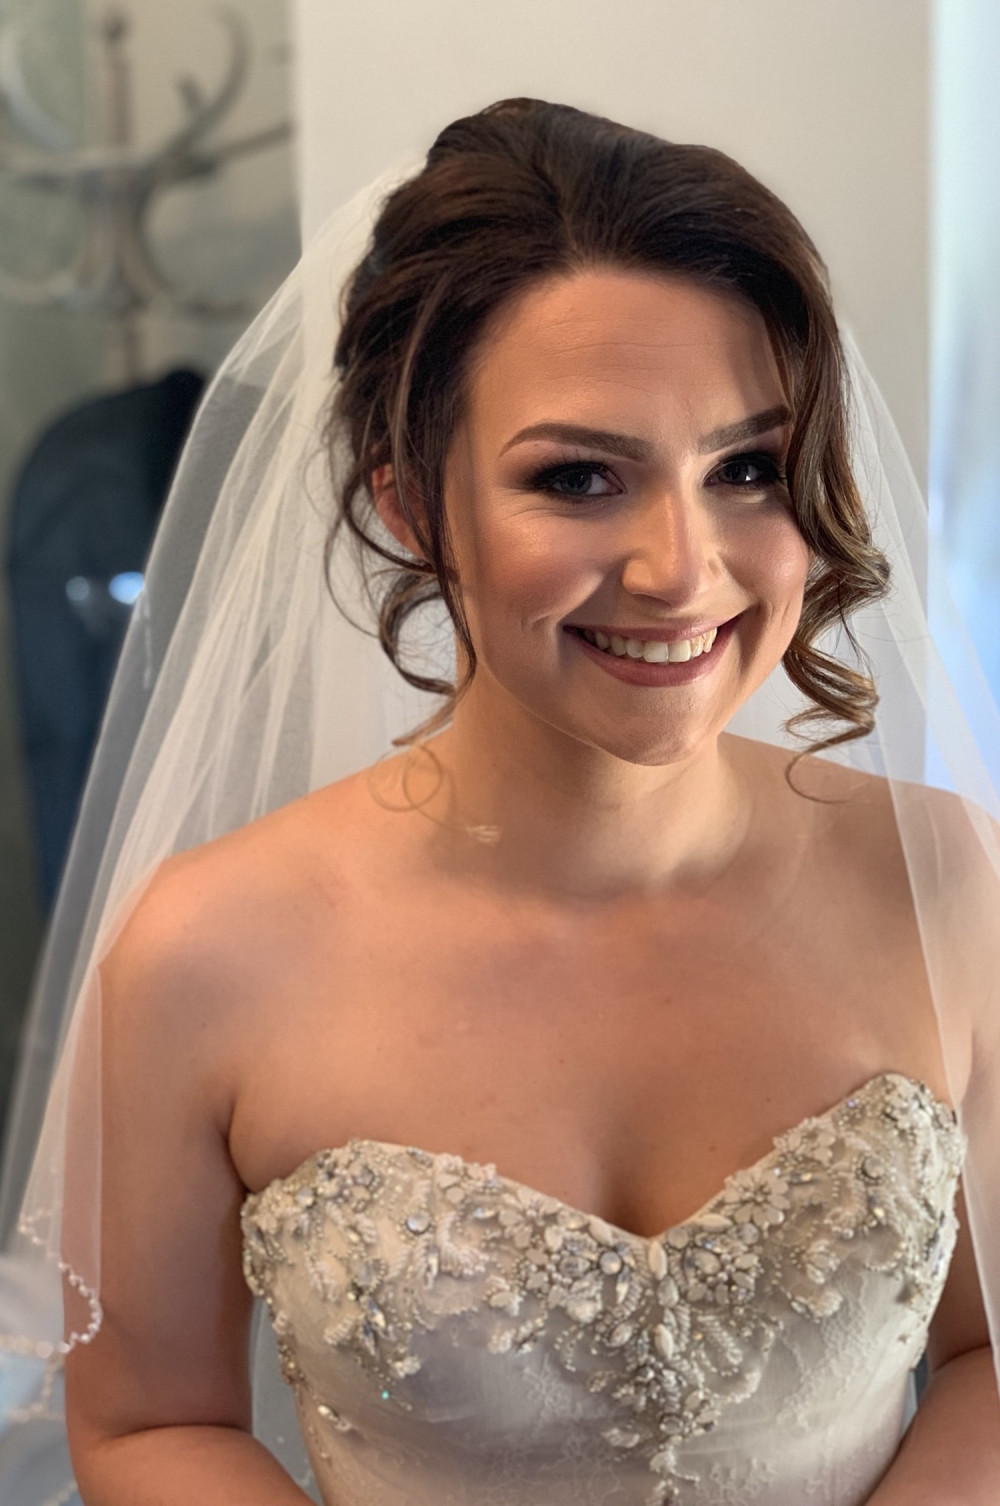 Beautiful bride smiling at the camera